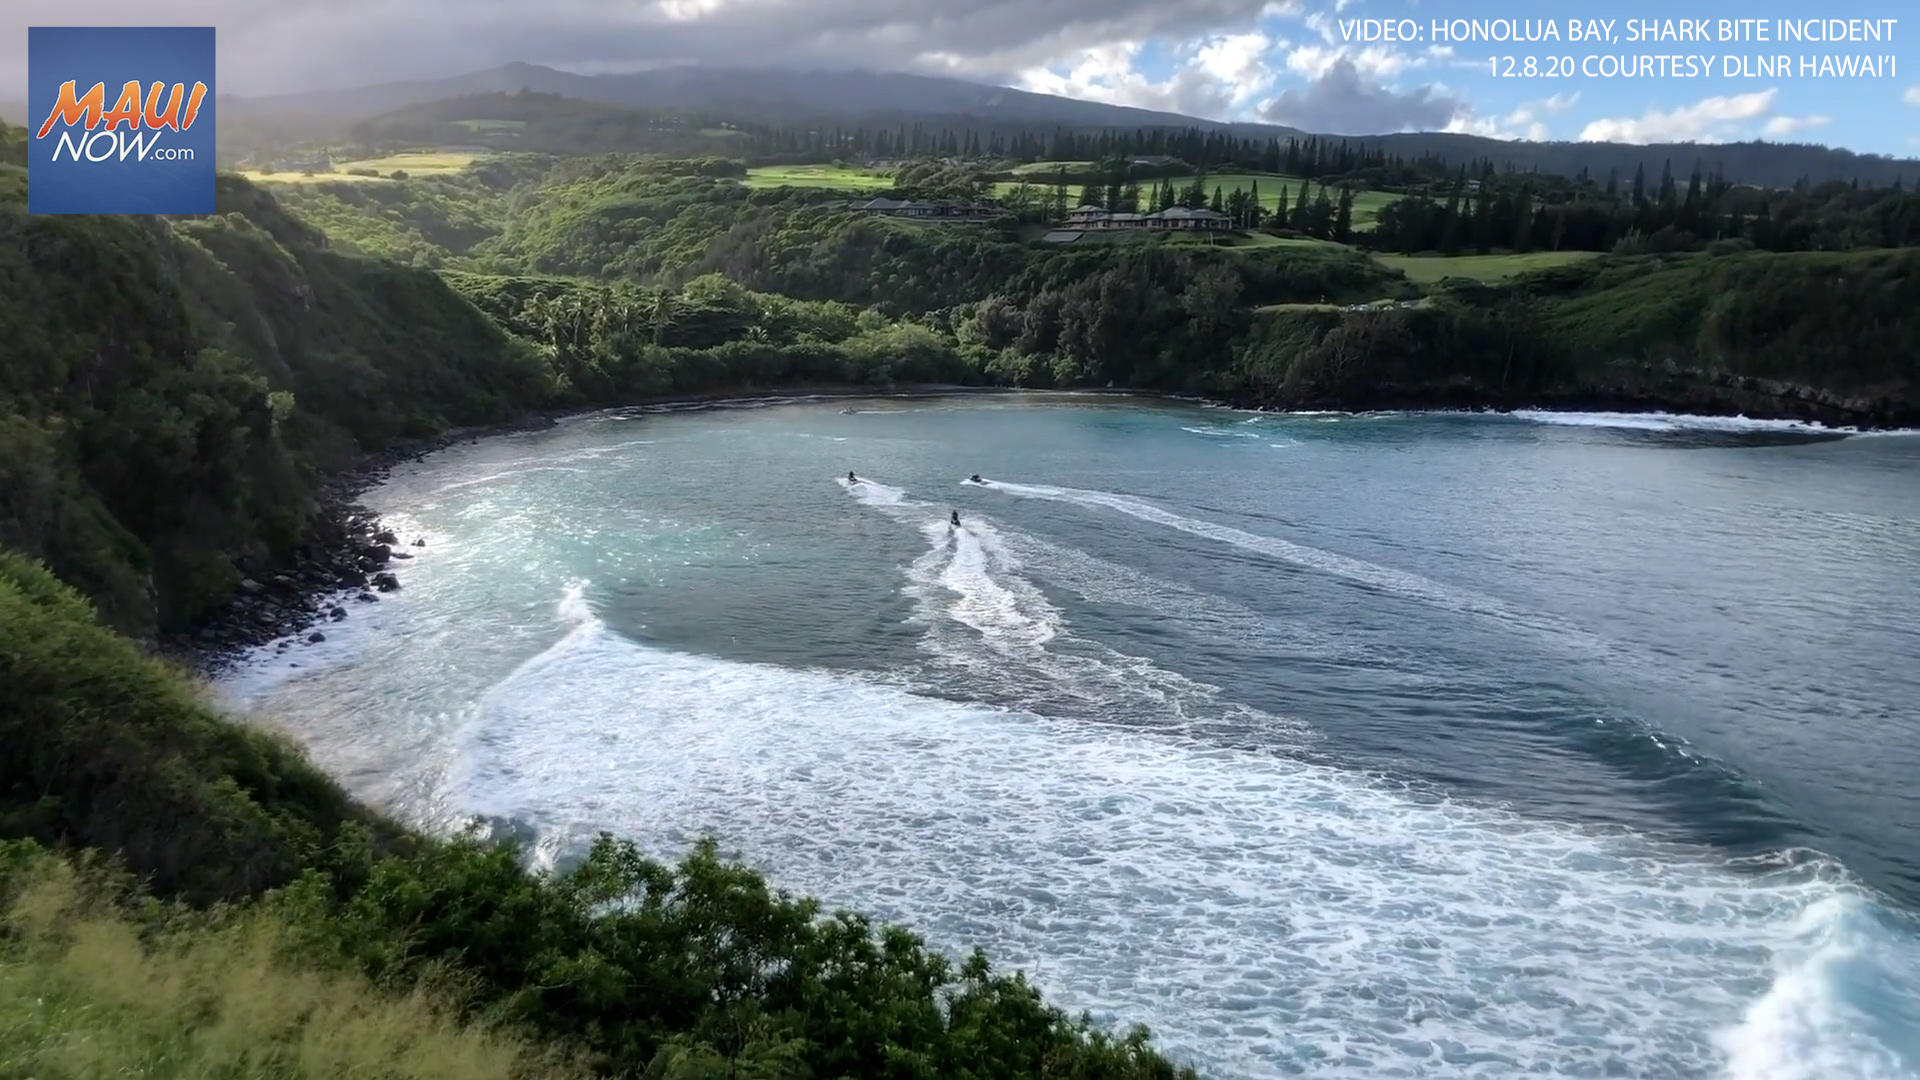 Shark Bite Victim on Maui Succumbs to Injuries